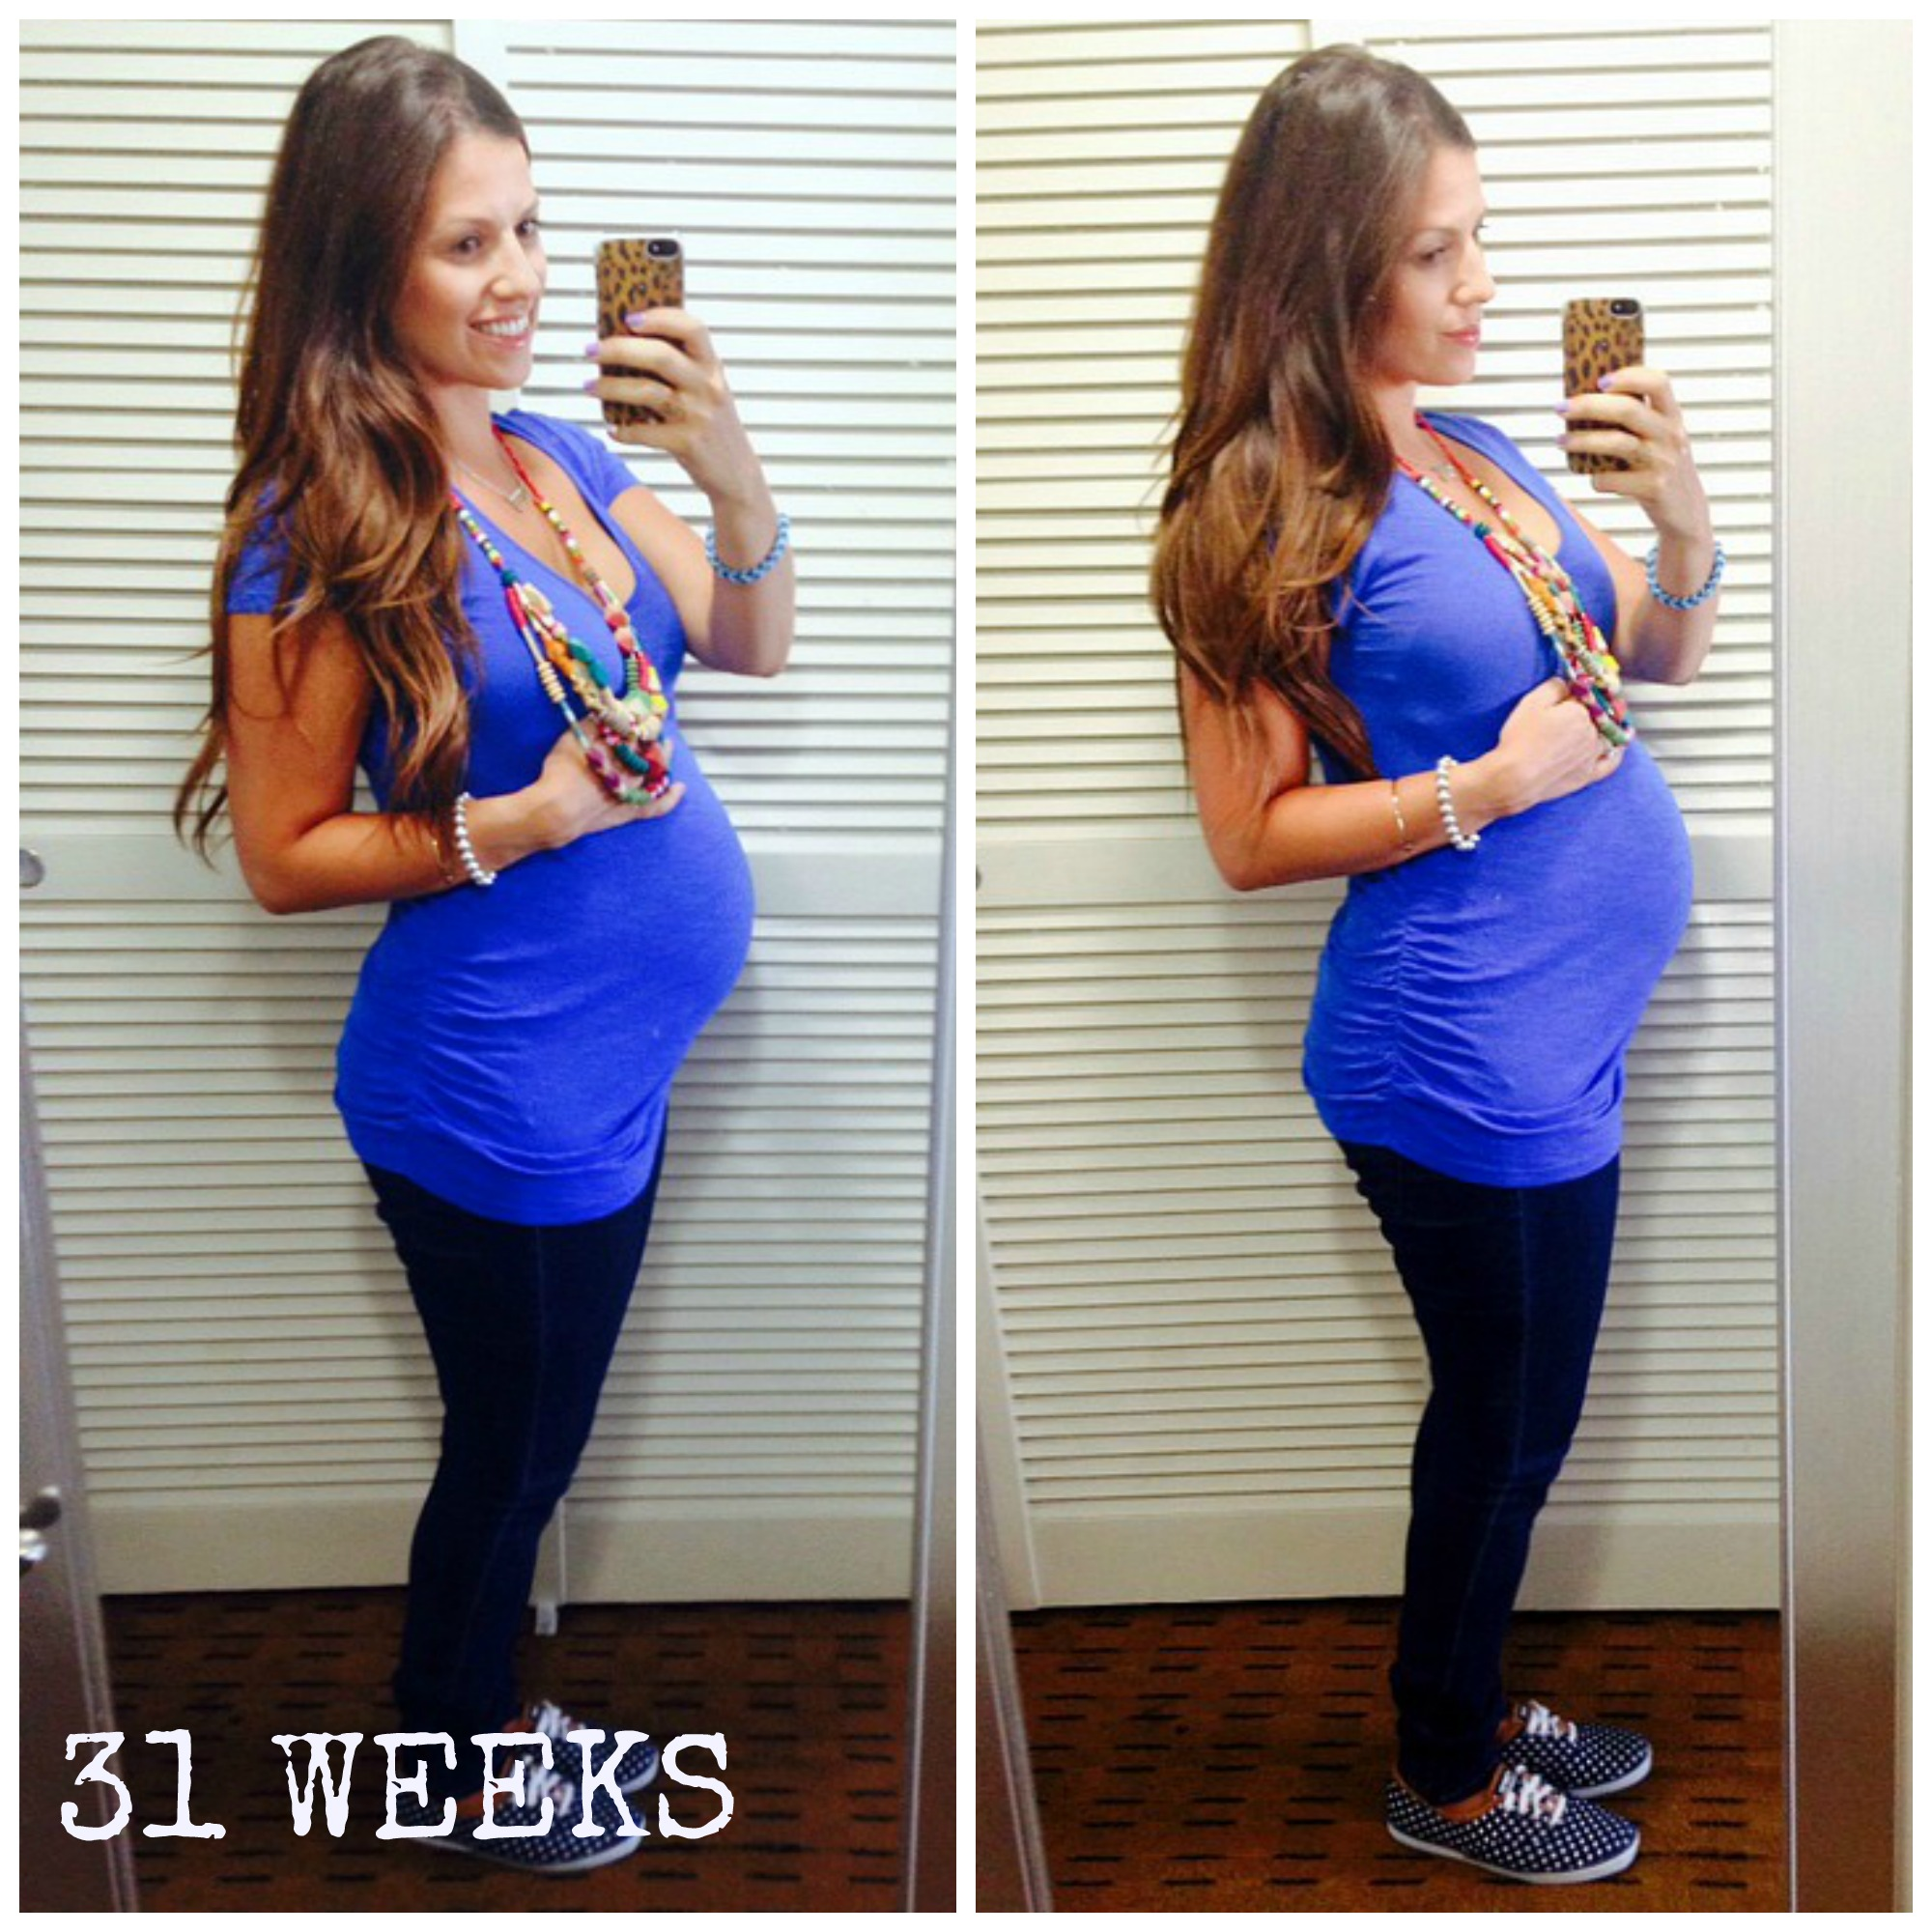 Fullsize Of 31 Weeks Pregnant